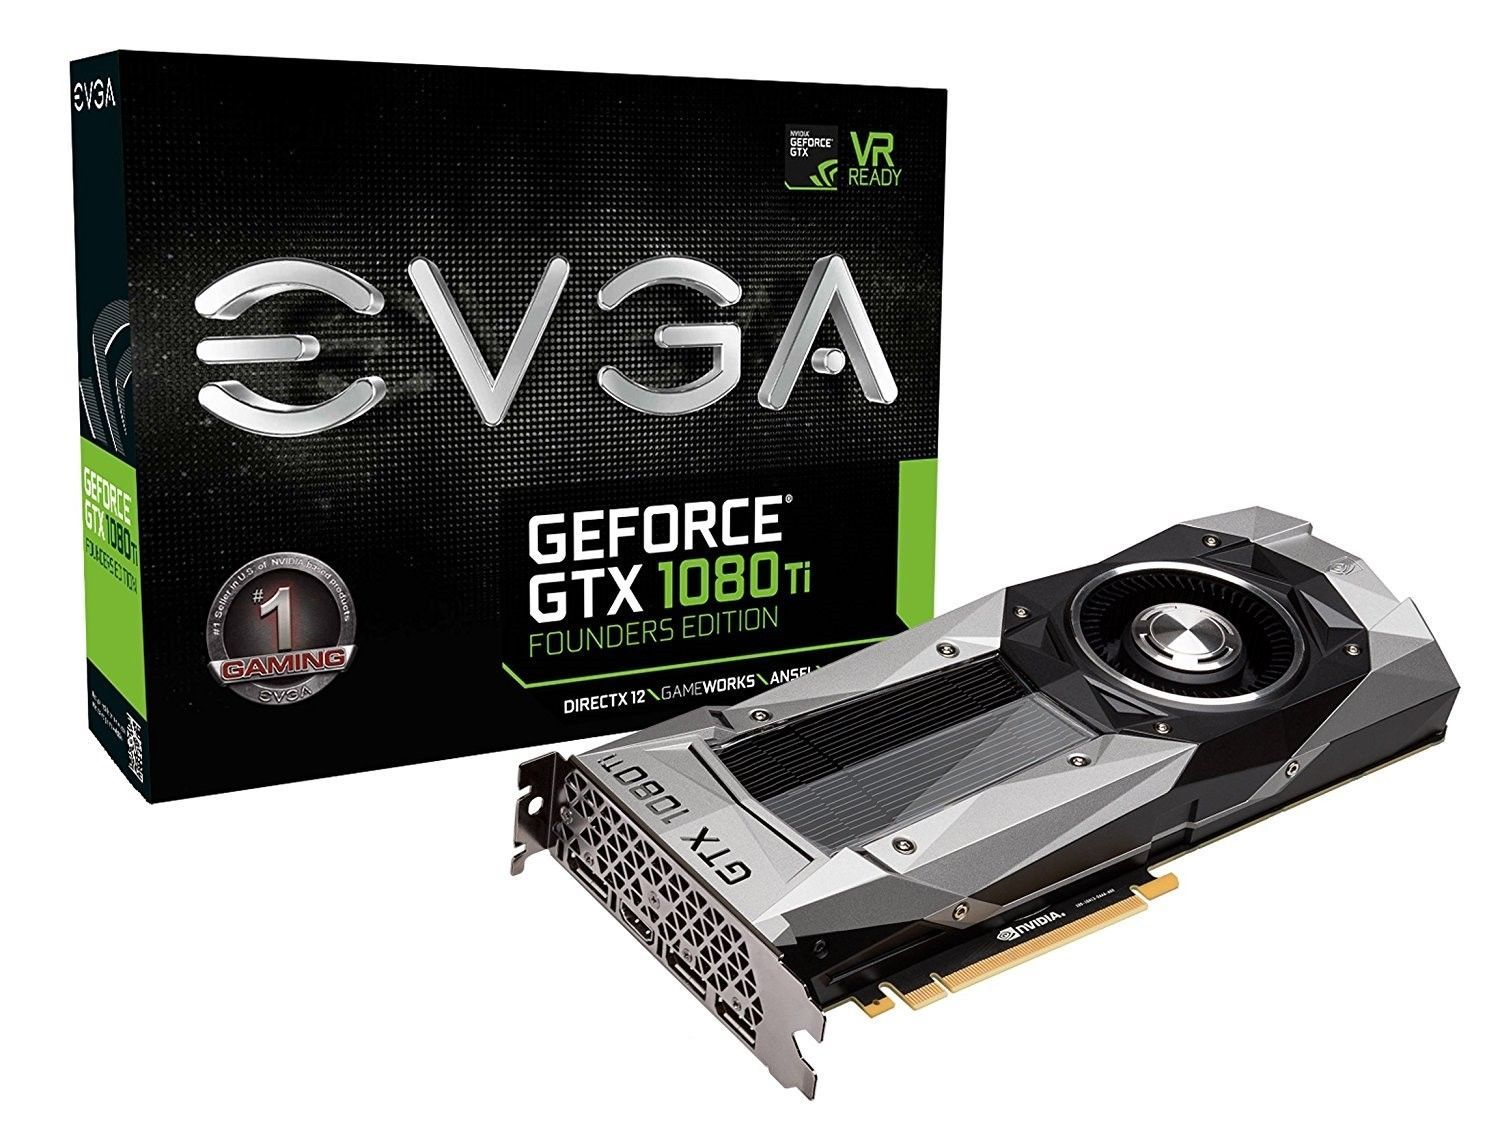 #Trending02 - GTX 1080 Ti EVGA Founders Edition Brand New https://t.co/sOWDkJl9Wv Ebay https://t.co/6bSoquSIUV